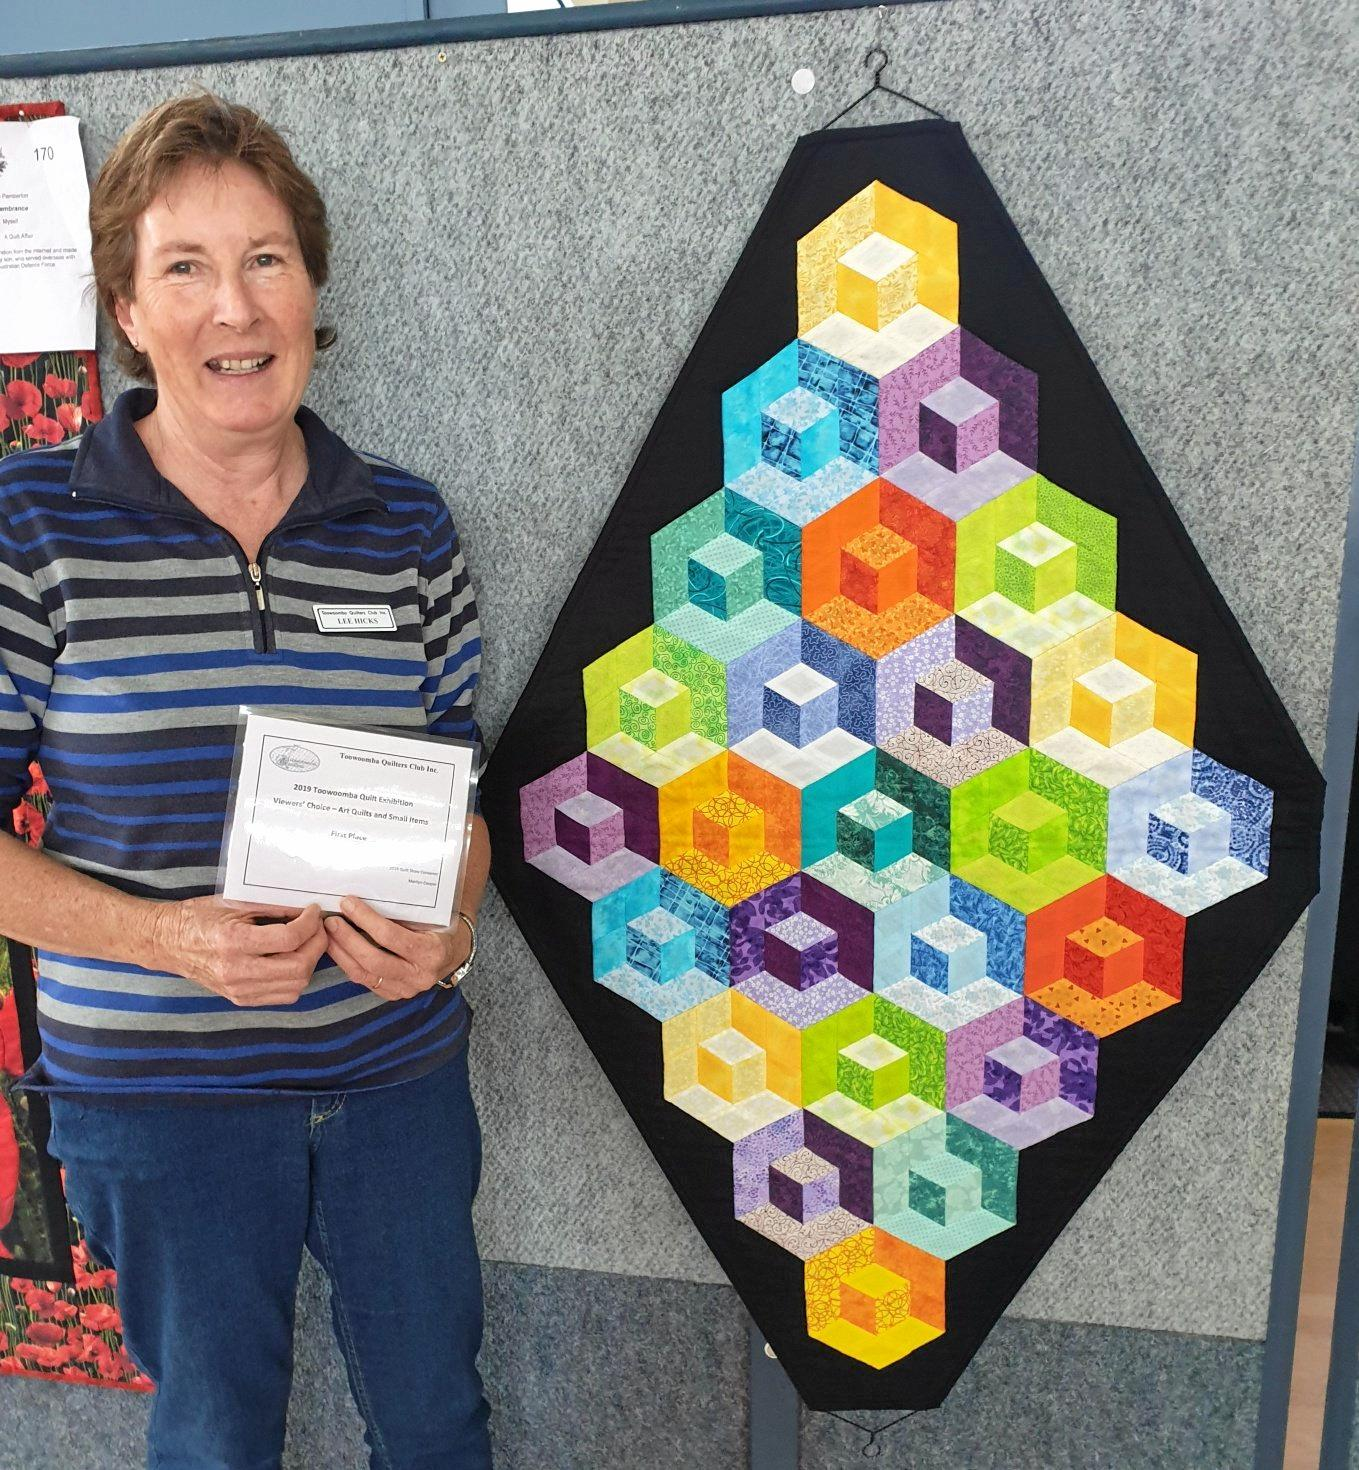 Lee Hicks 'Block in a Block' - Winner Viewers Choice Small Items - at Quilt Exhibition held September 21-27, 2019 in Toowoomba.